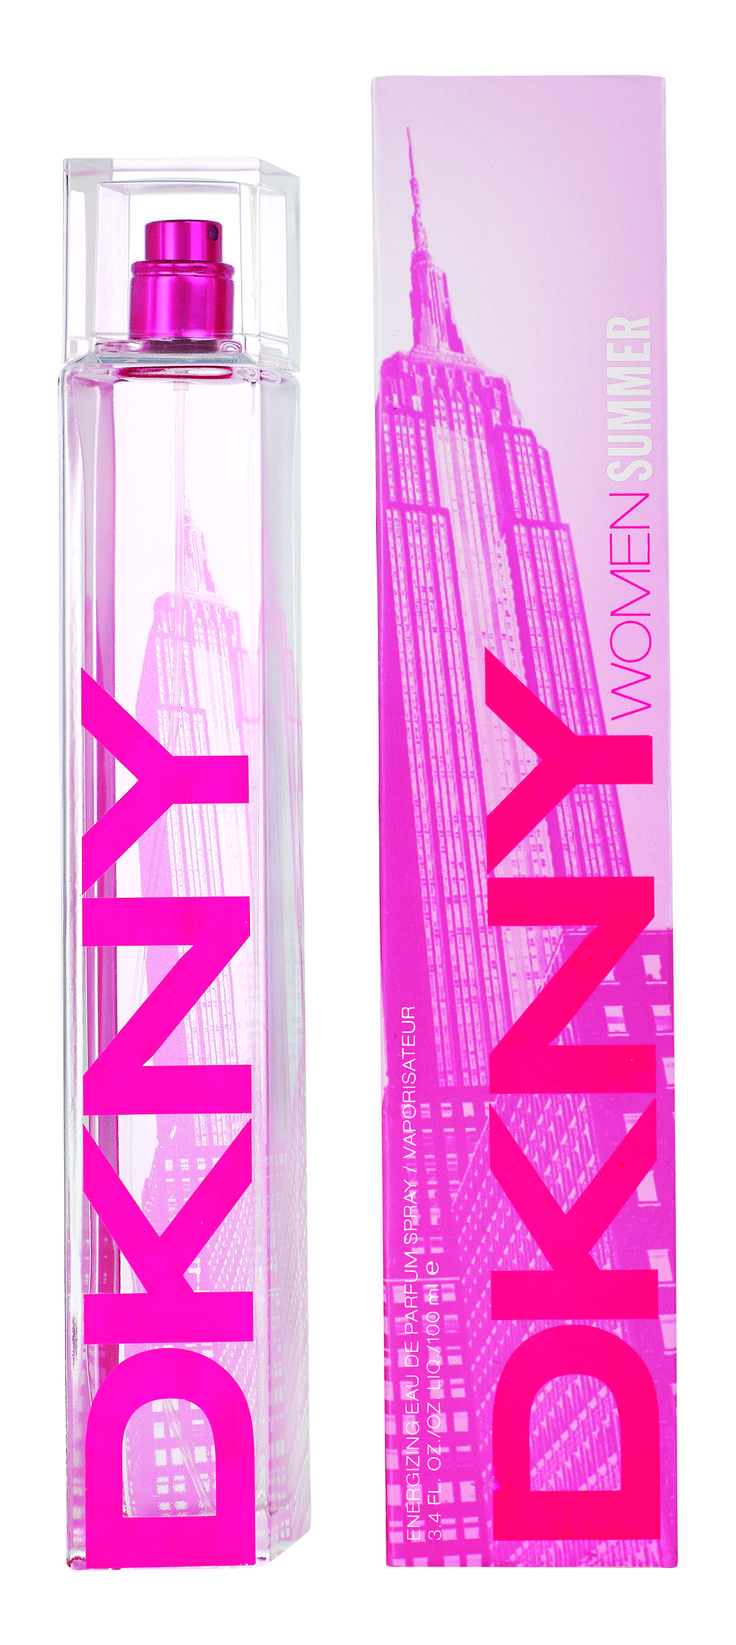 Ltd Edition DKNY fragrance